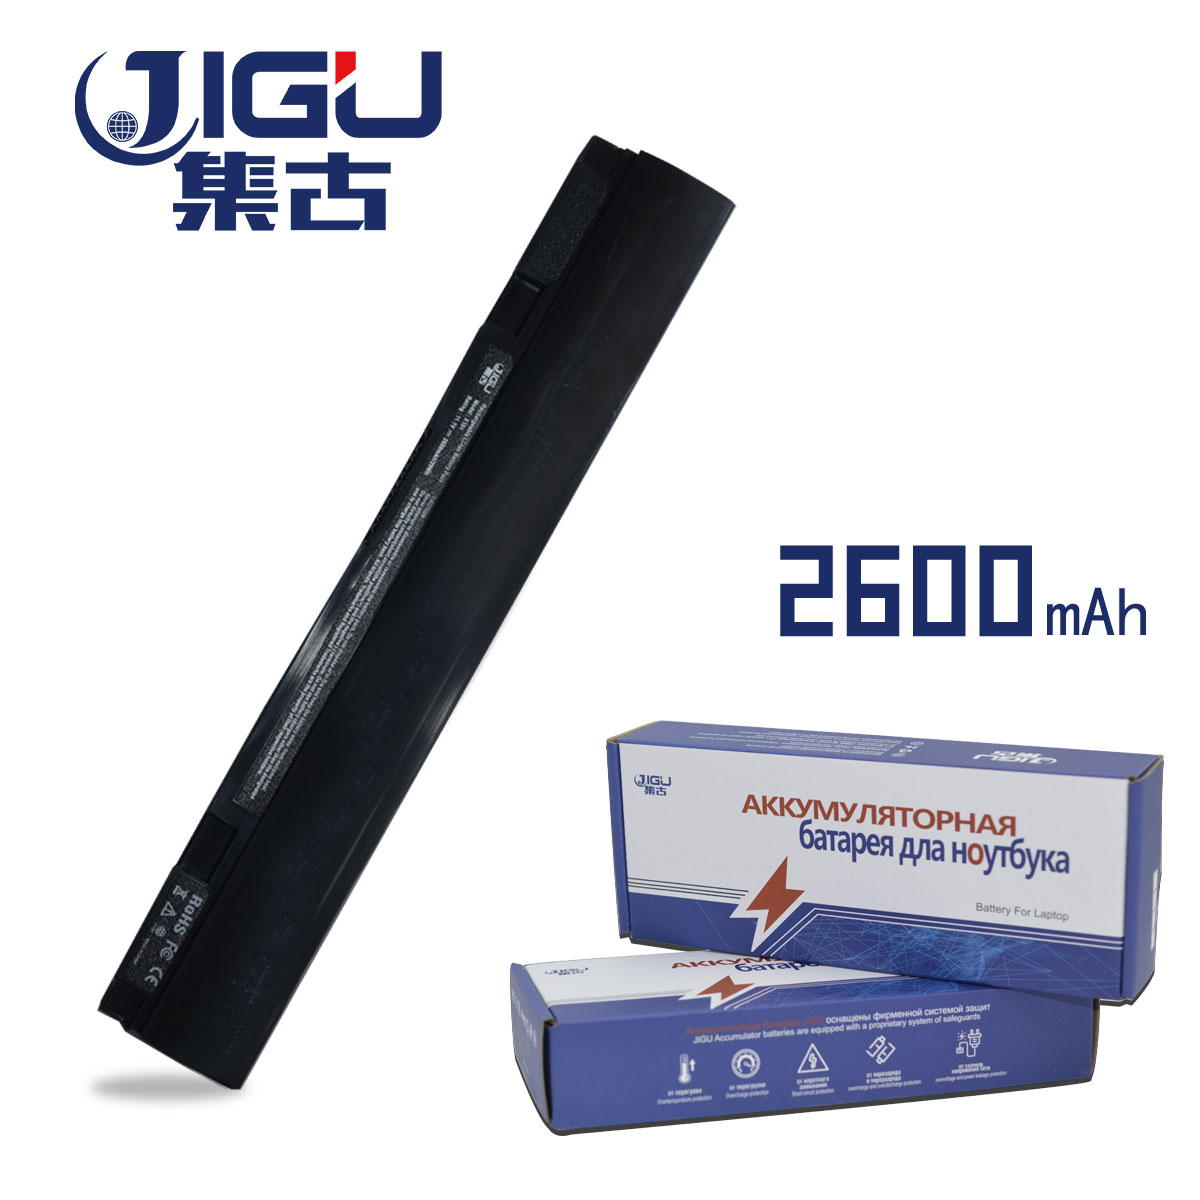 JIGU Laptop Battery For ASUS Eee PC X101CH X101 X101C X101H Replace: A31-X101 A32-X101